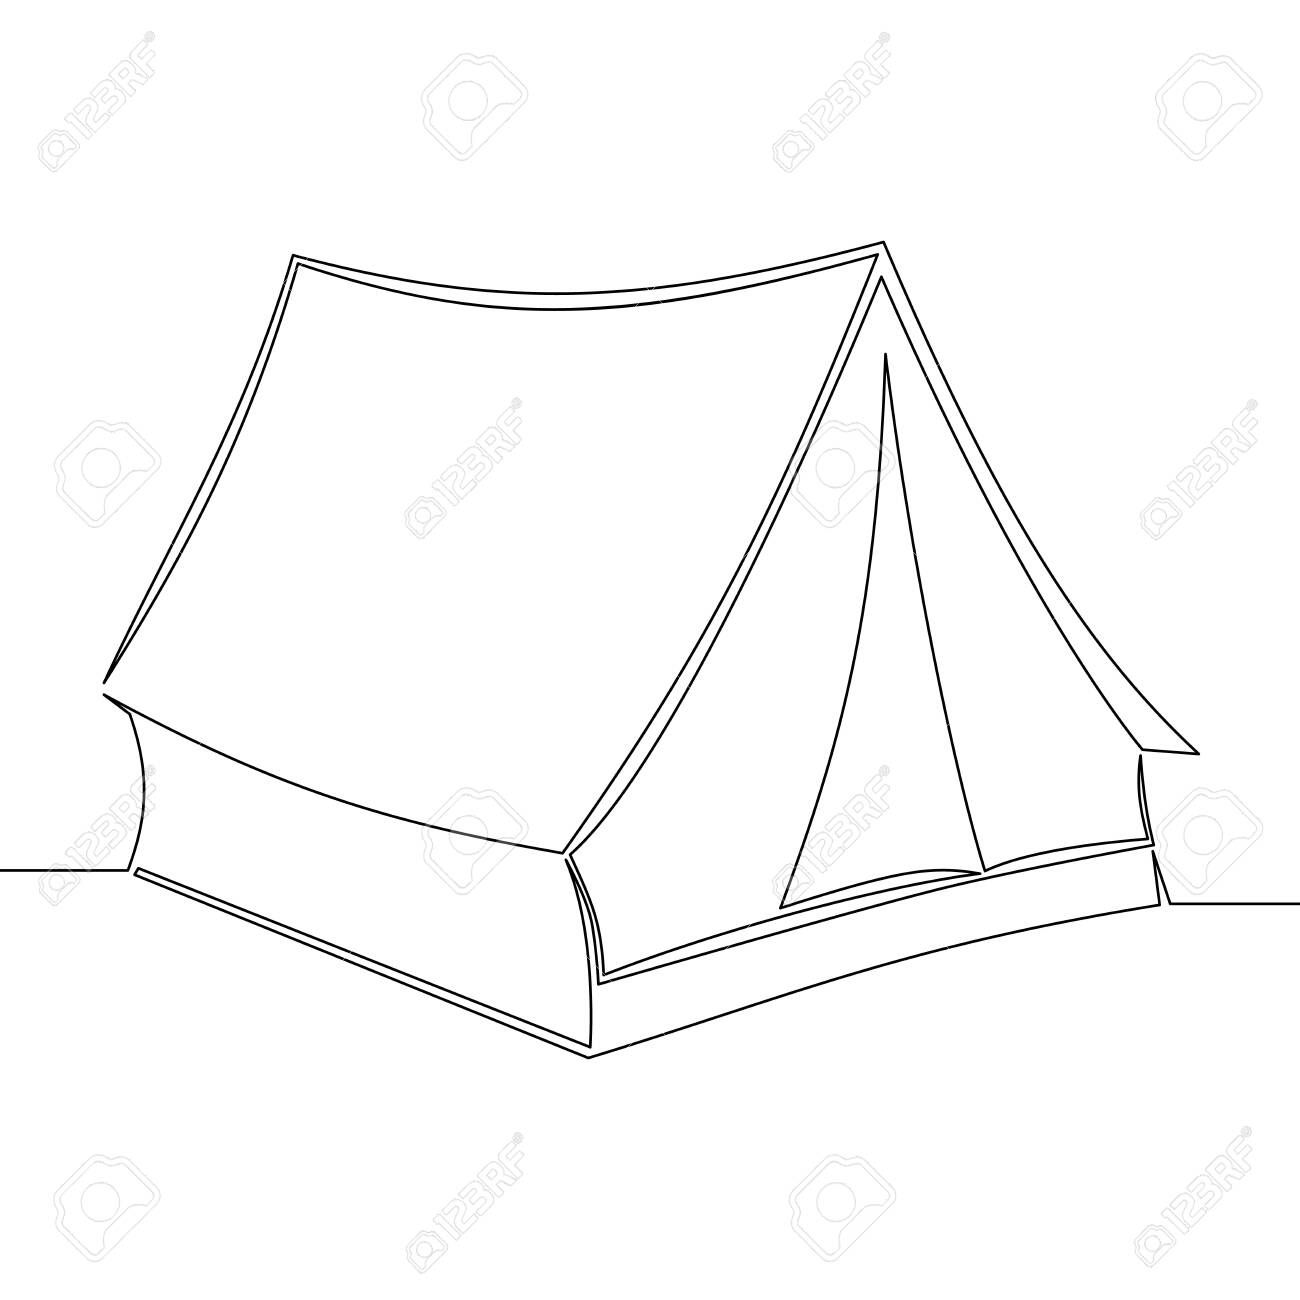 Continuous One Single Line Drawing Tent Icon Vector Illustration Concept Stock Vector 137563475 In 2021 Single Line Drawing Line Drawing Tent Drawing